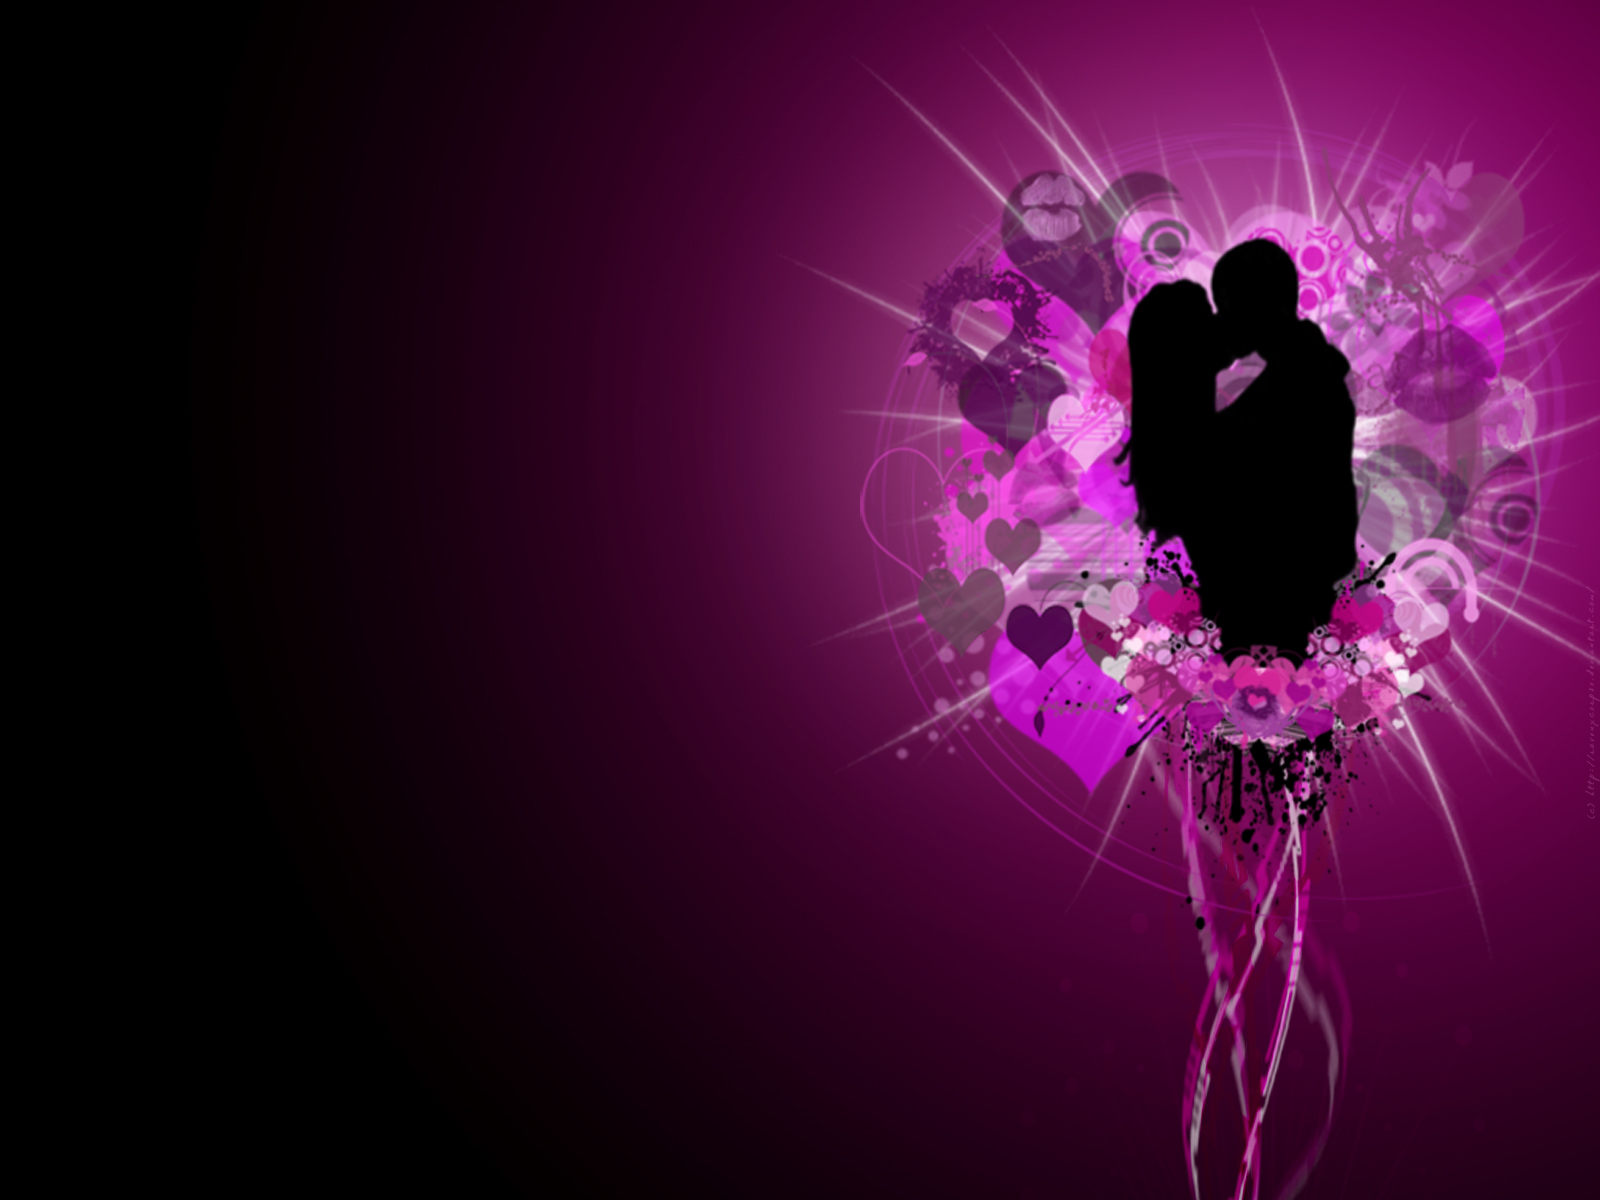 romantic+wallpapers+hd+1